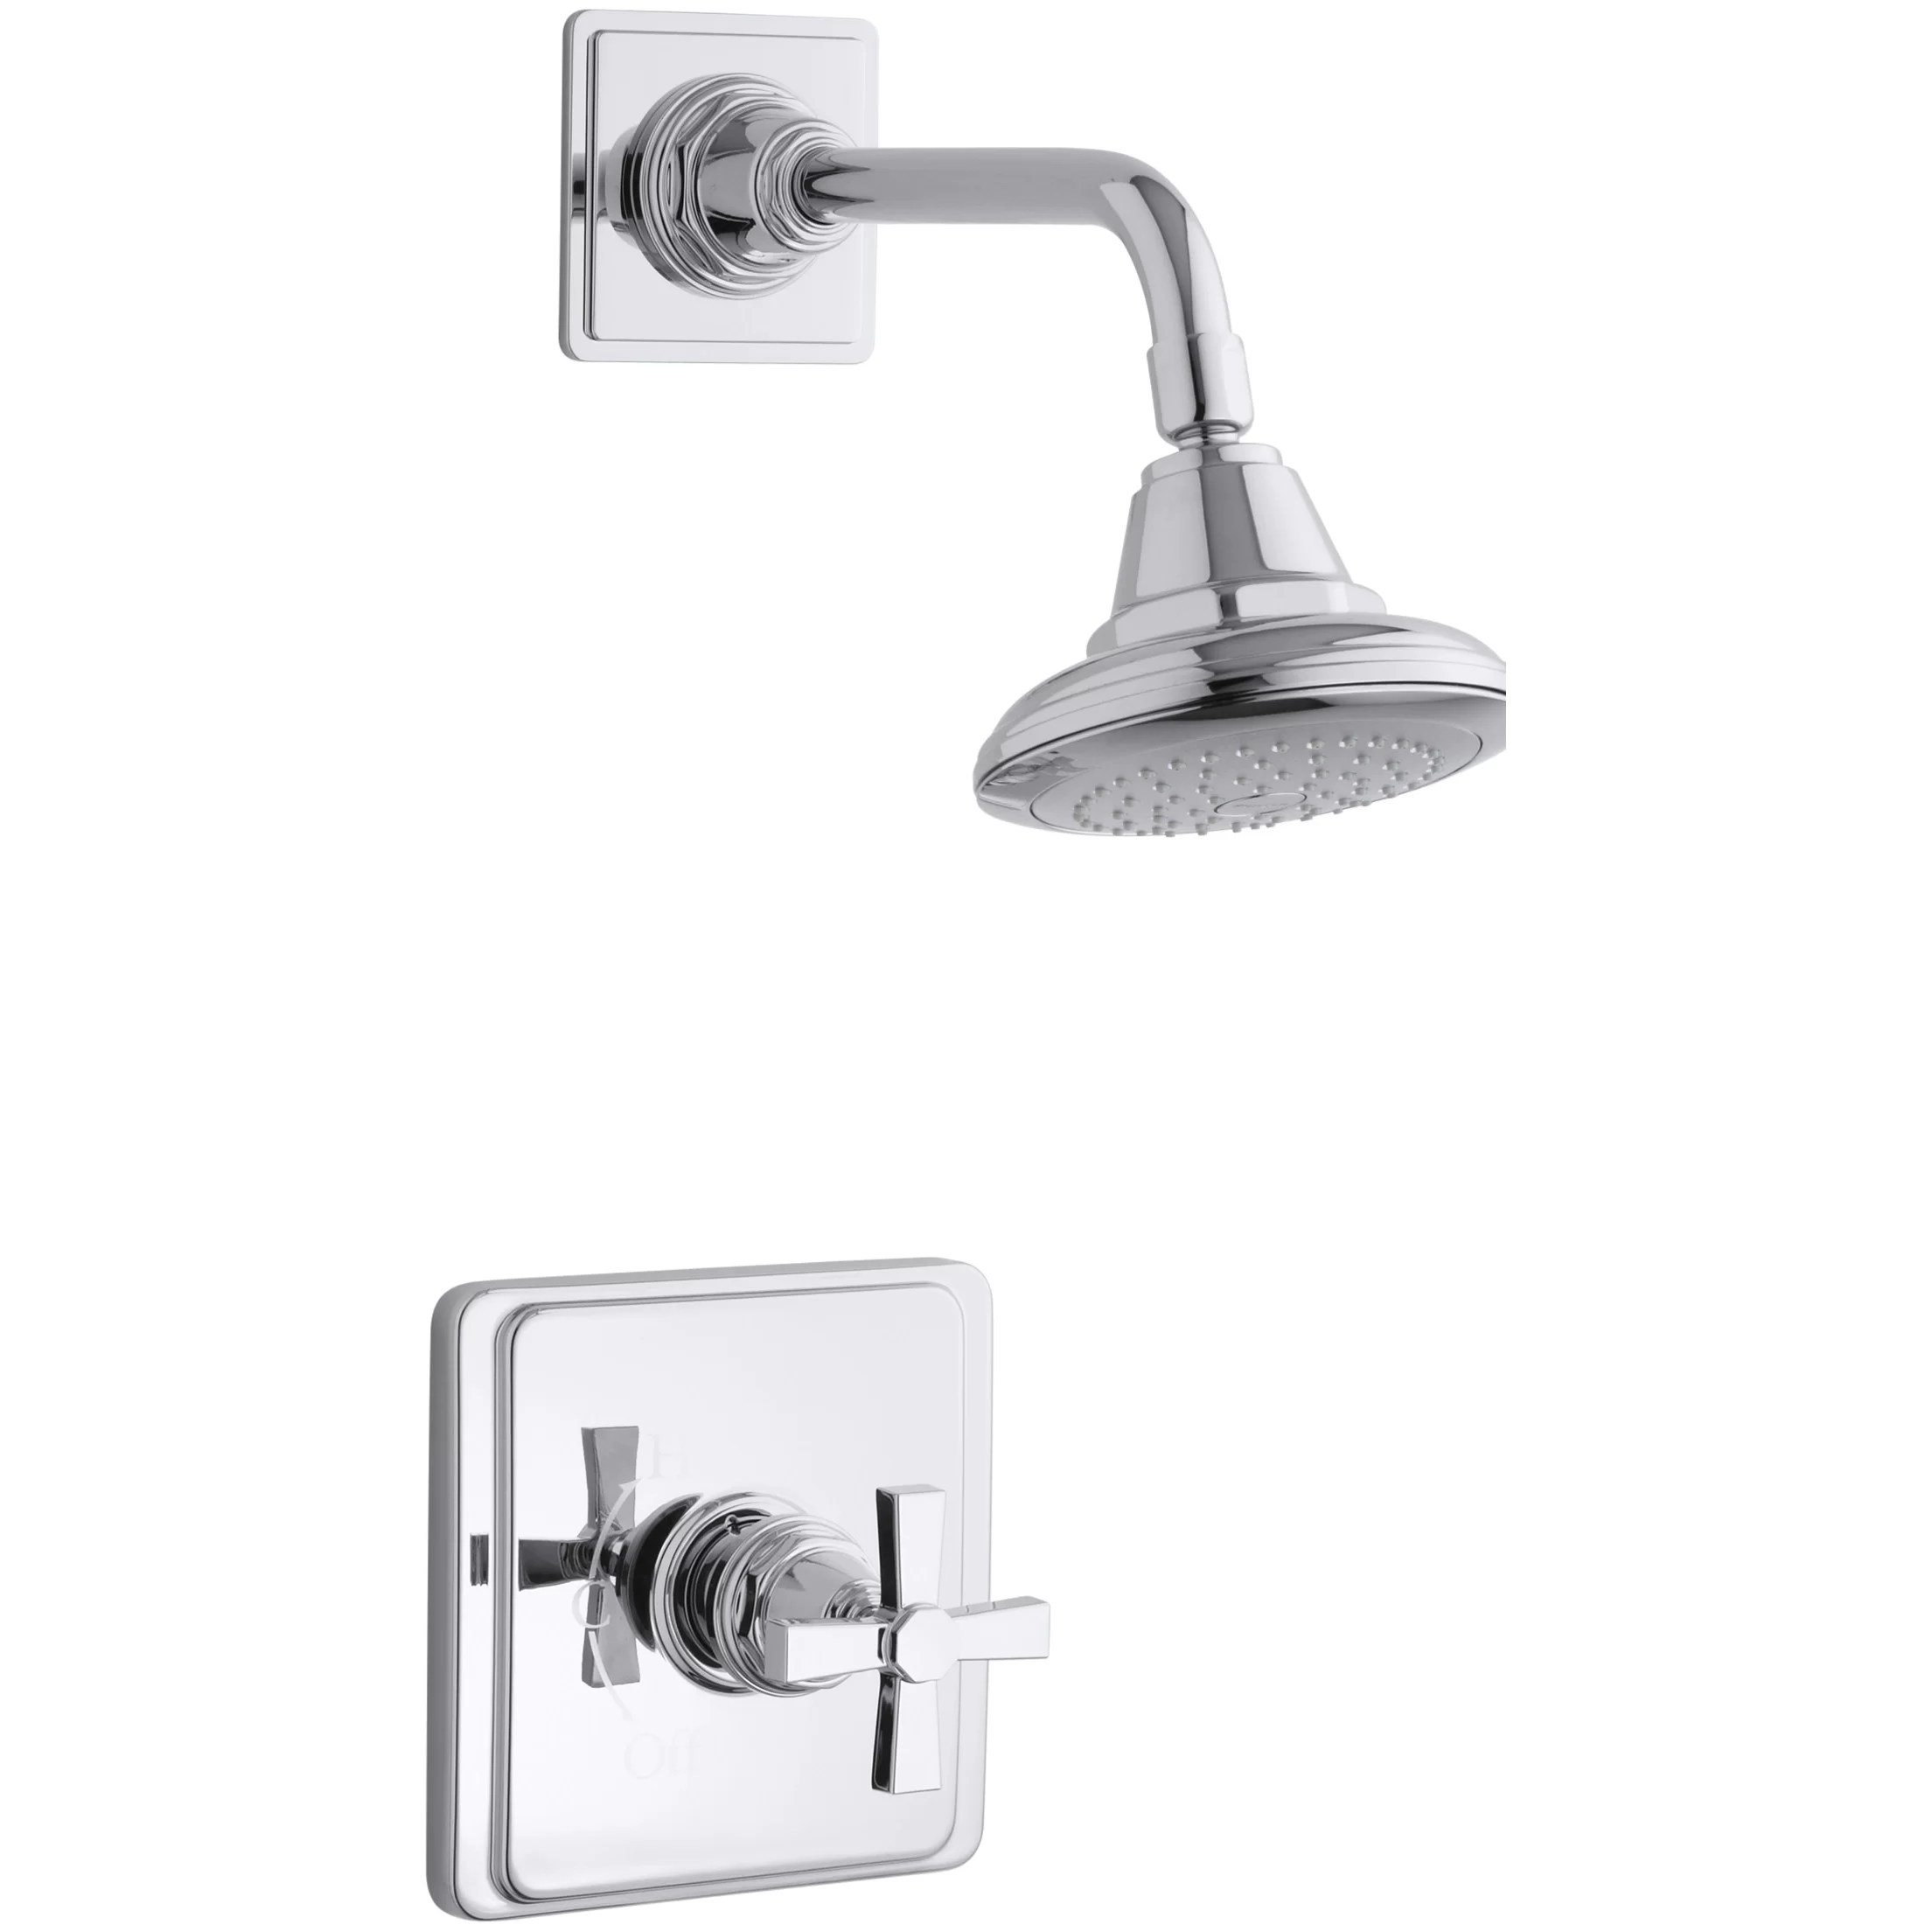 Kohler Pinstripe Pure RiteTemp PressureBalancing Shower Faucet Trim with Cross Handle Valve